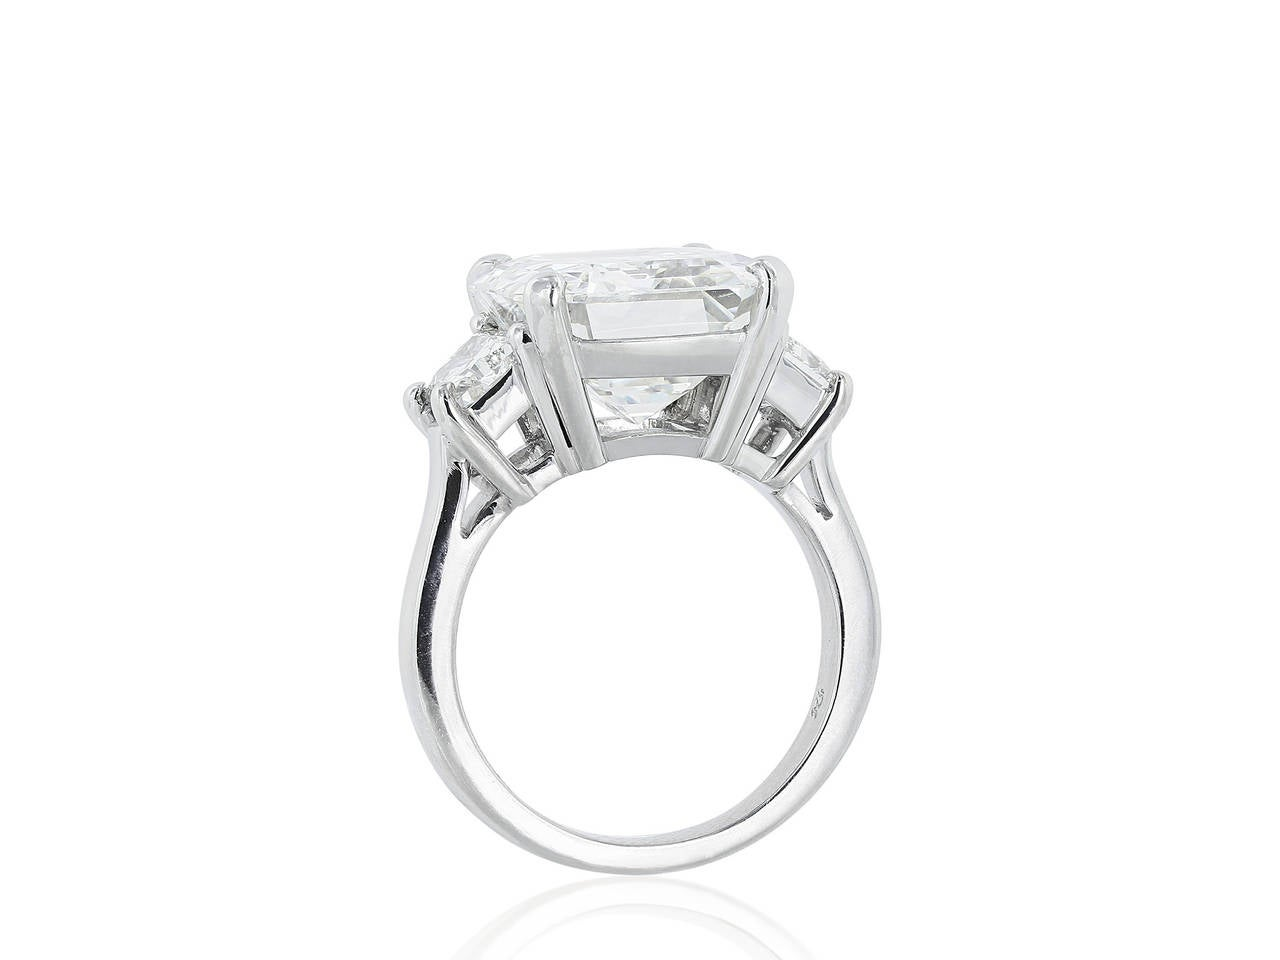 Platinum three stone style engagement ring consisting of one emerald cut diamond weighing 9.01 carats, measuring, having a color and clarity of H/VS1 with GIA report and flanked by two trapezoid cut diamonds, one on each side having a total weight